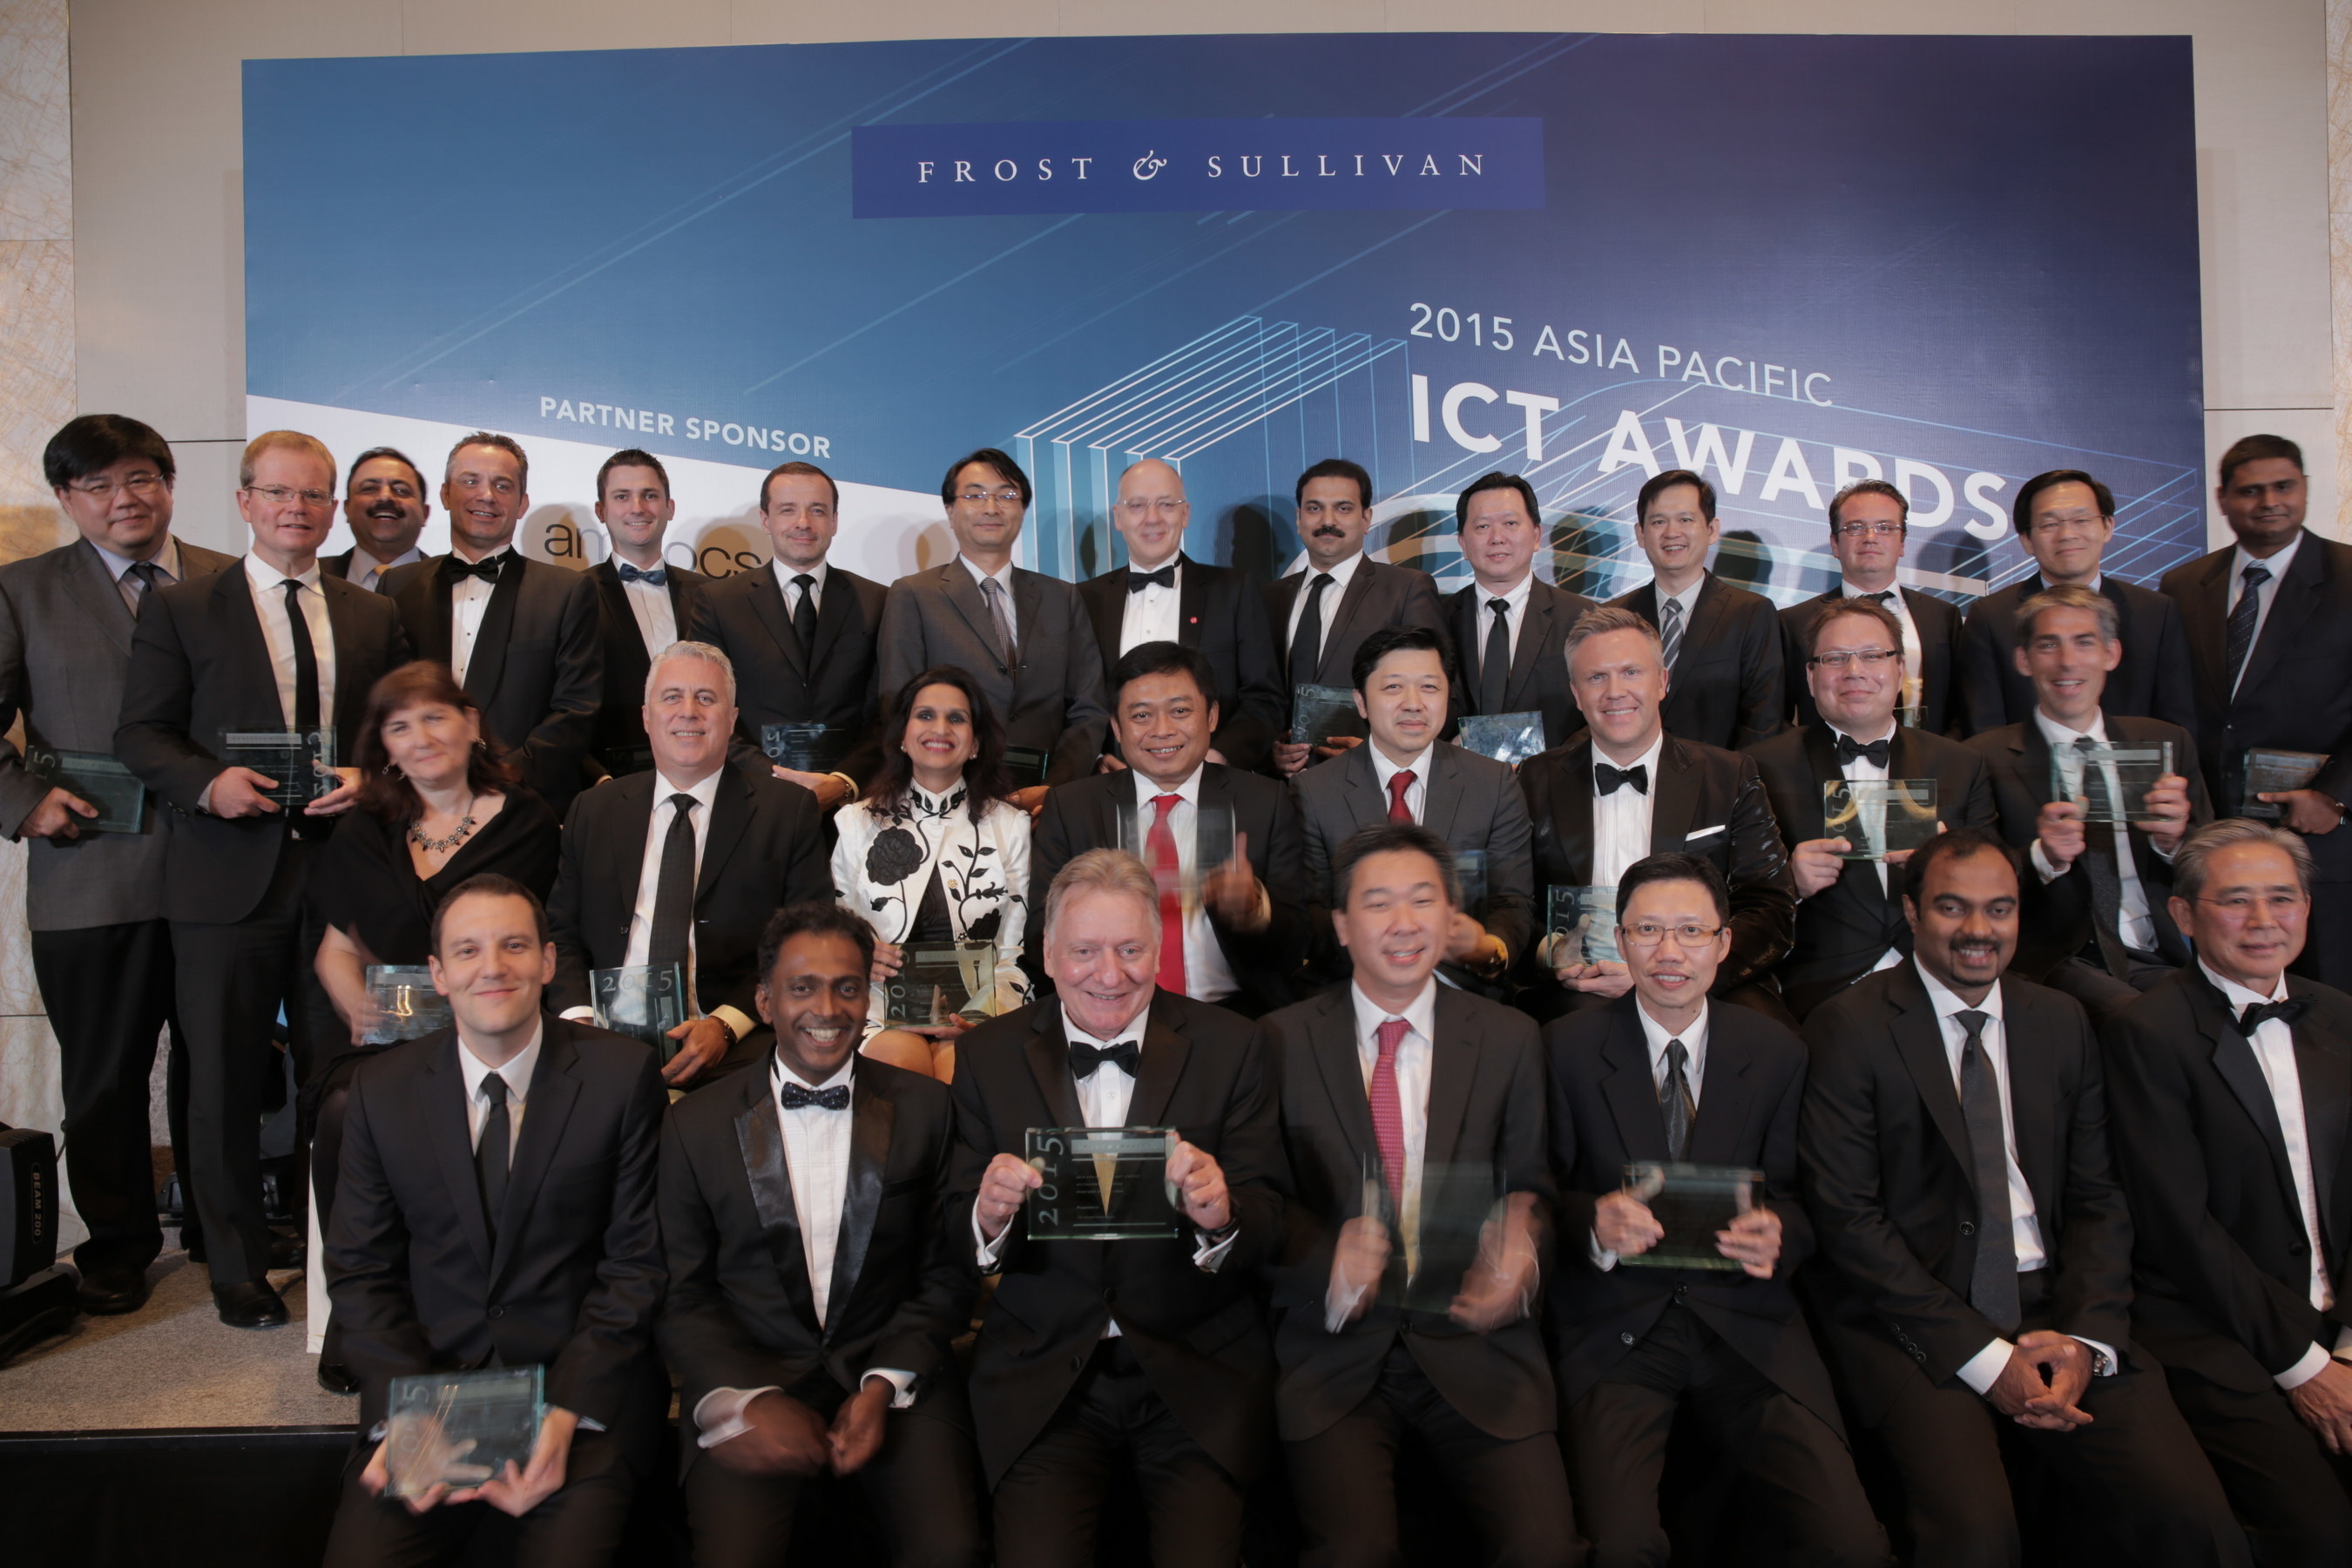 Asia's Top ICT Firms Honored at the 2015 Frost & Sullivan Asia Pacific ICT Awards